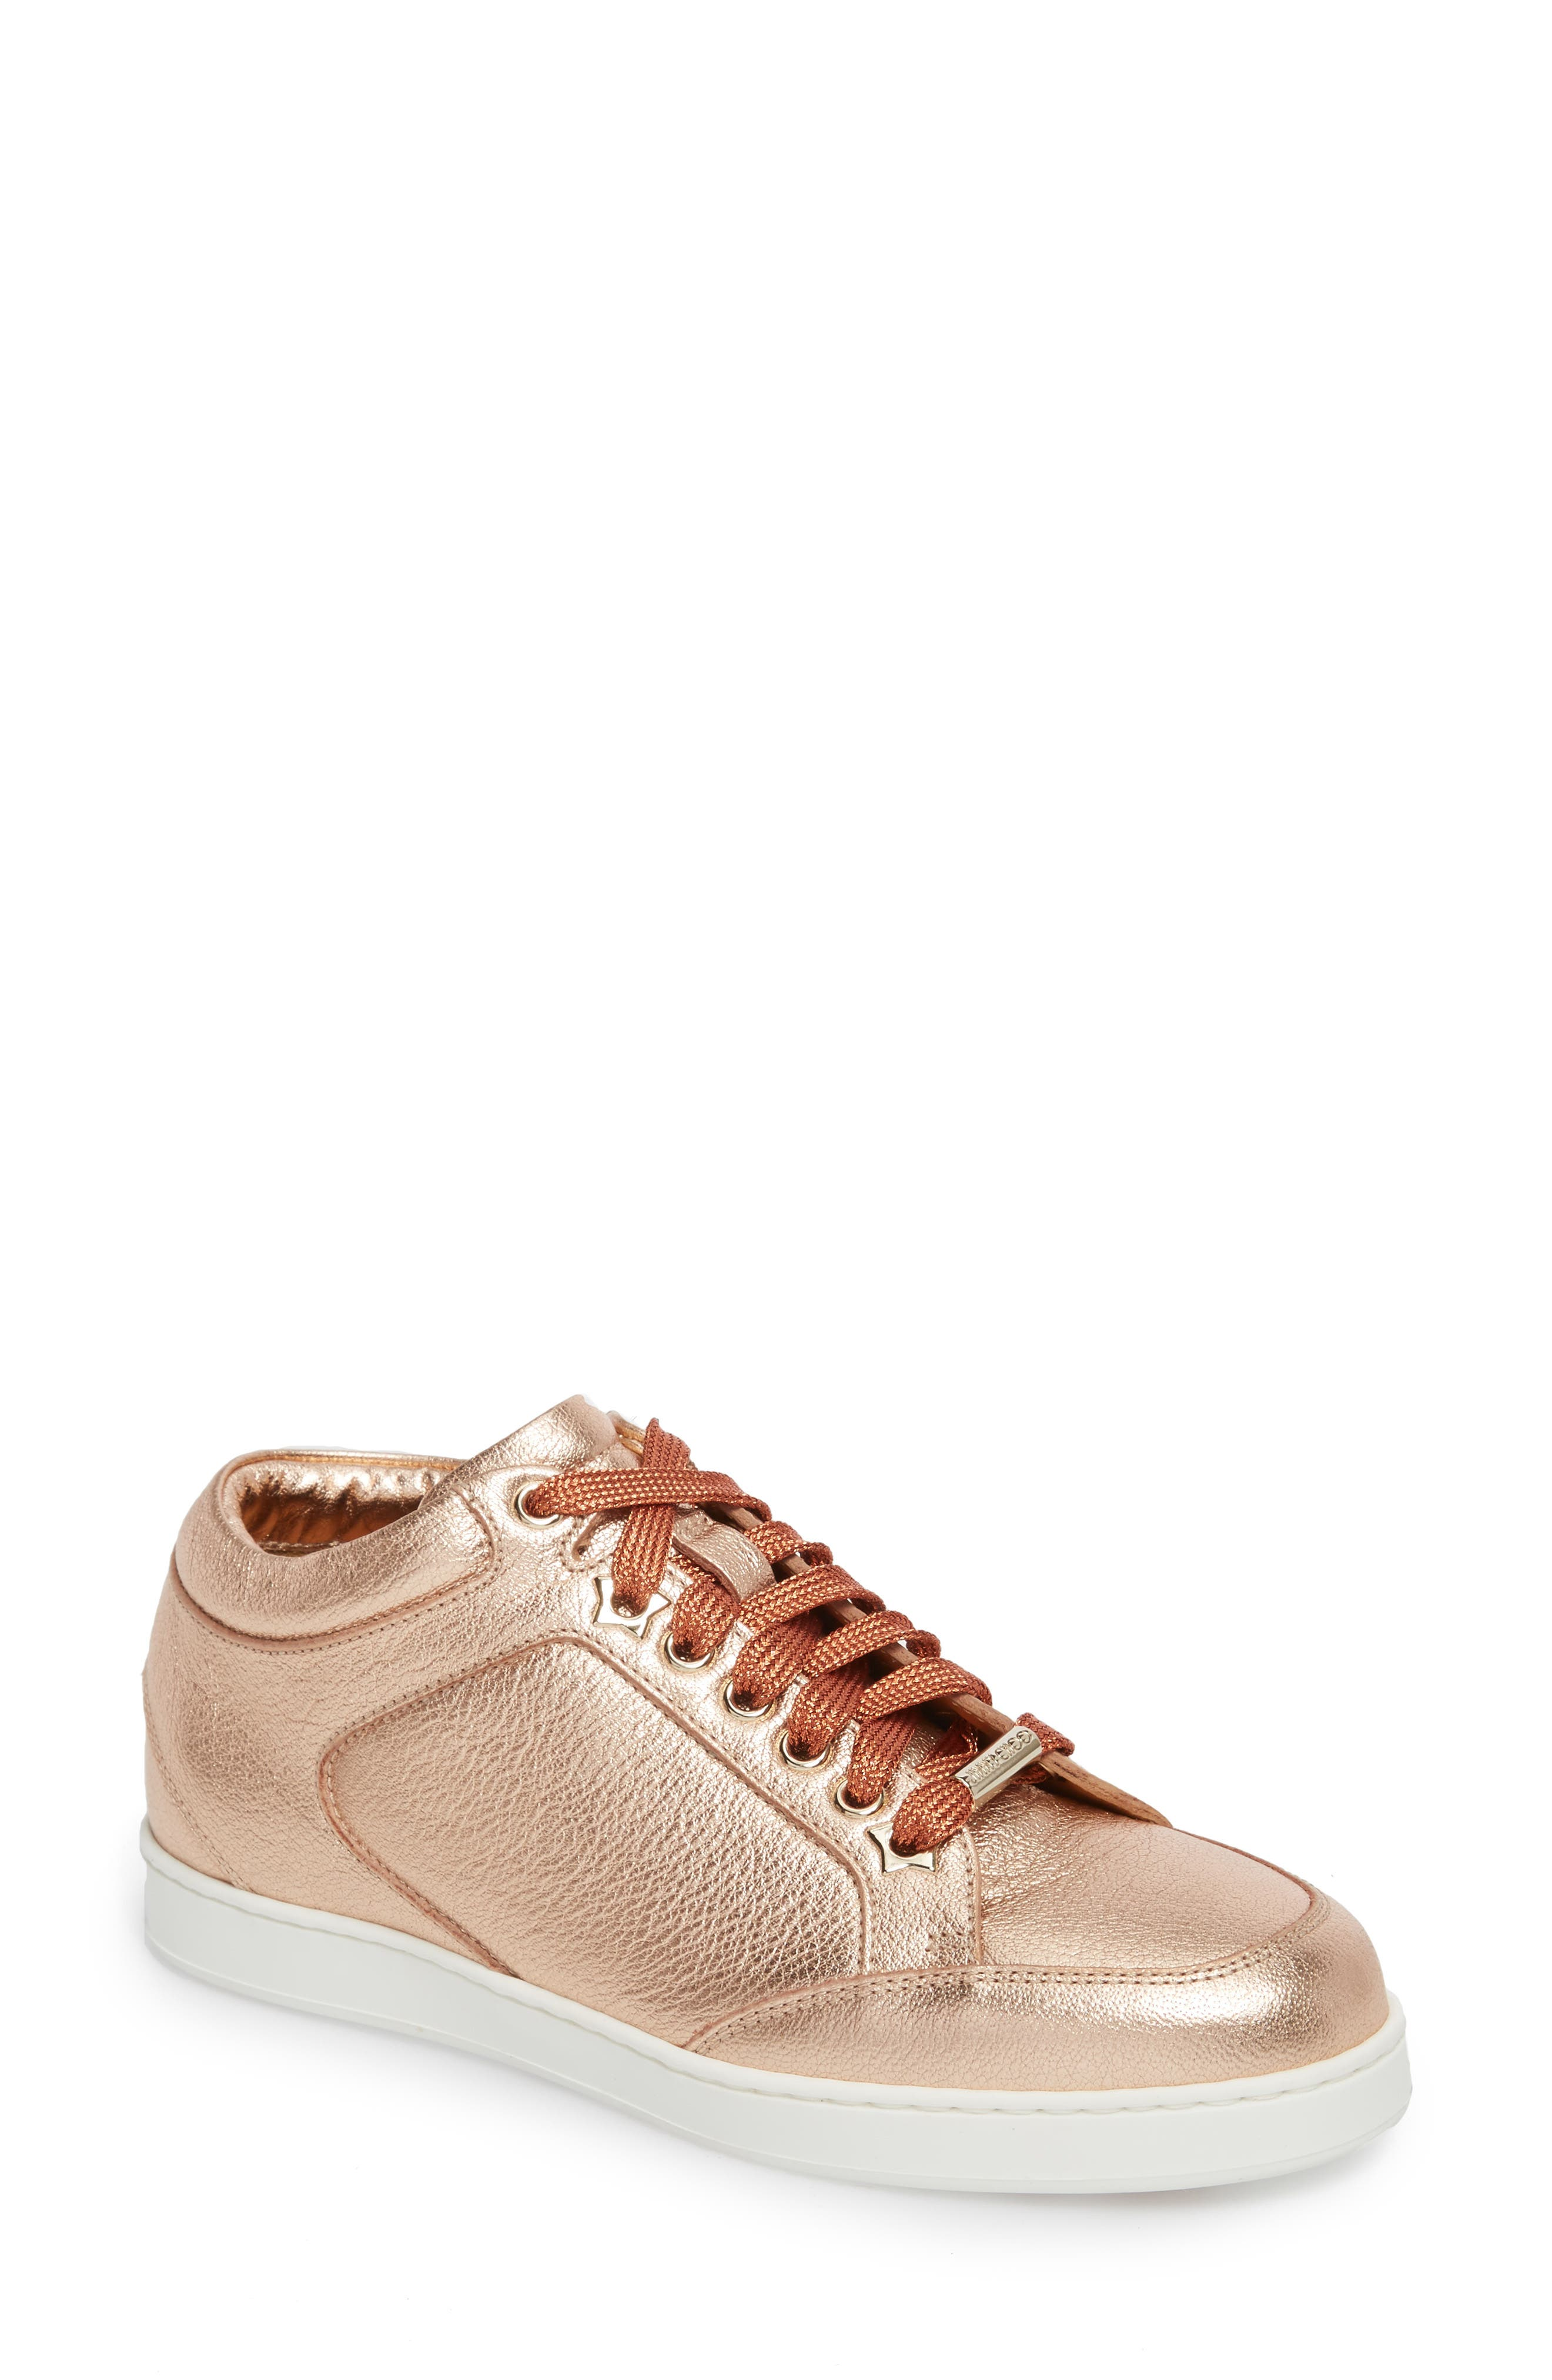 Main Image - Jimmy Choo Miami Metallic Sneaker (Women)